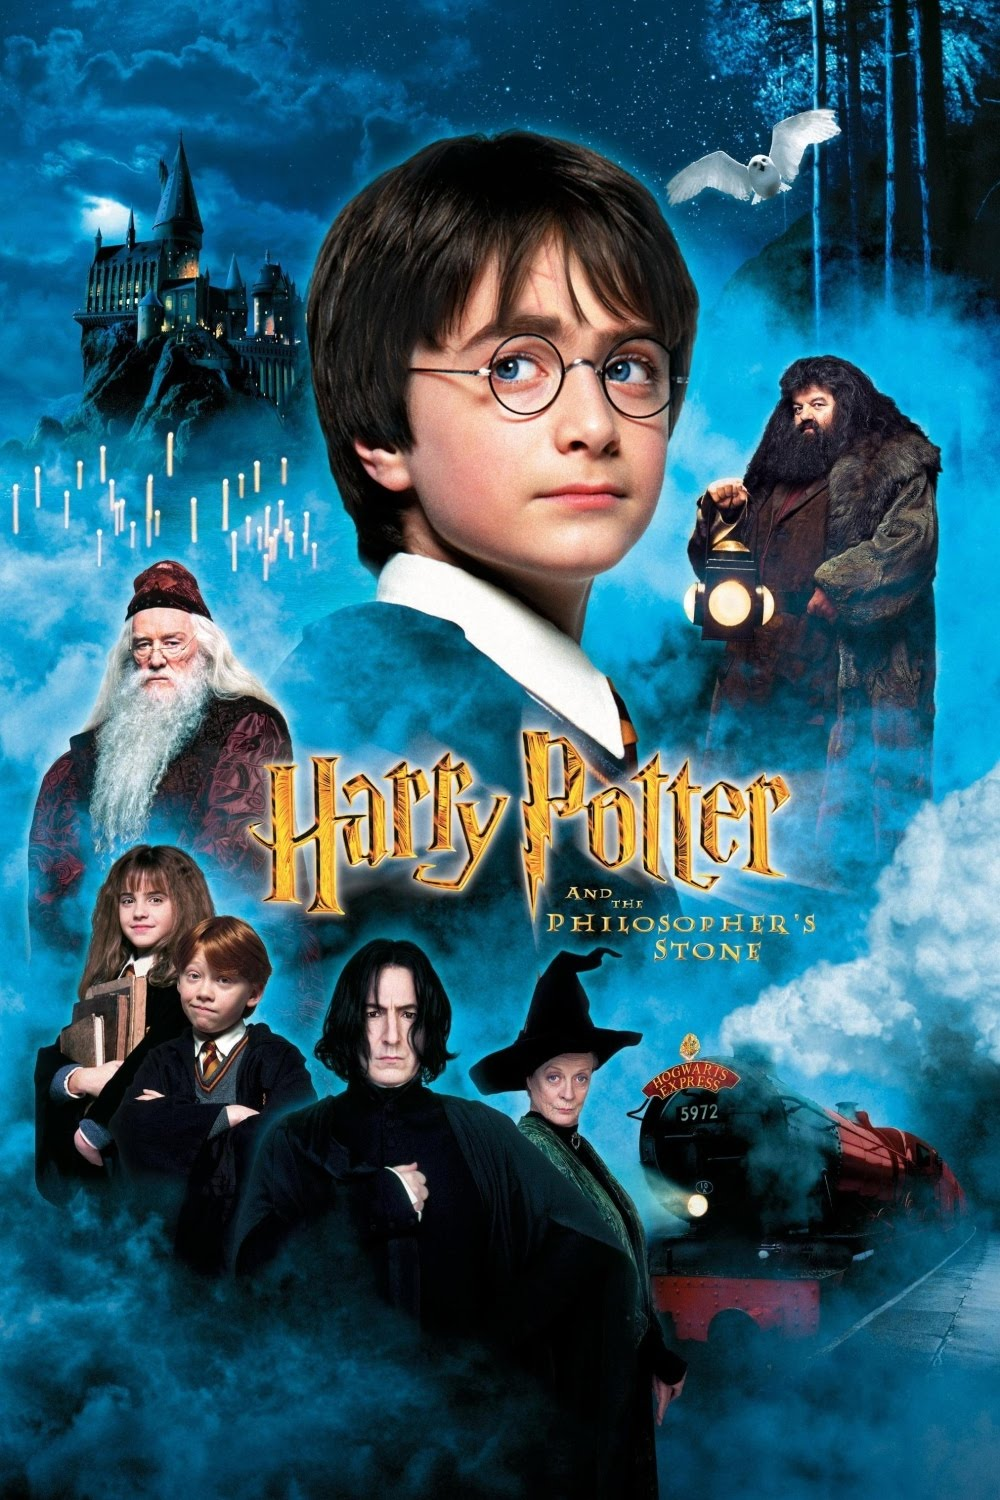 harry_potter_and_the_philosophers_stone_poster_2001_01.jpg